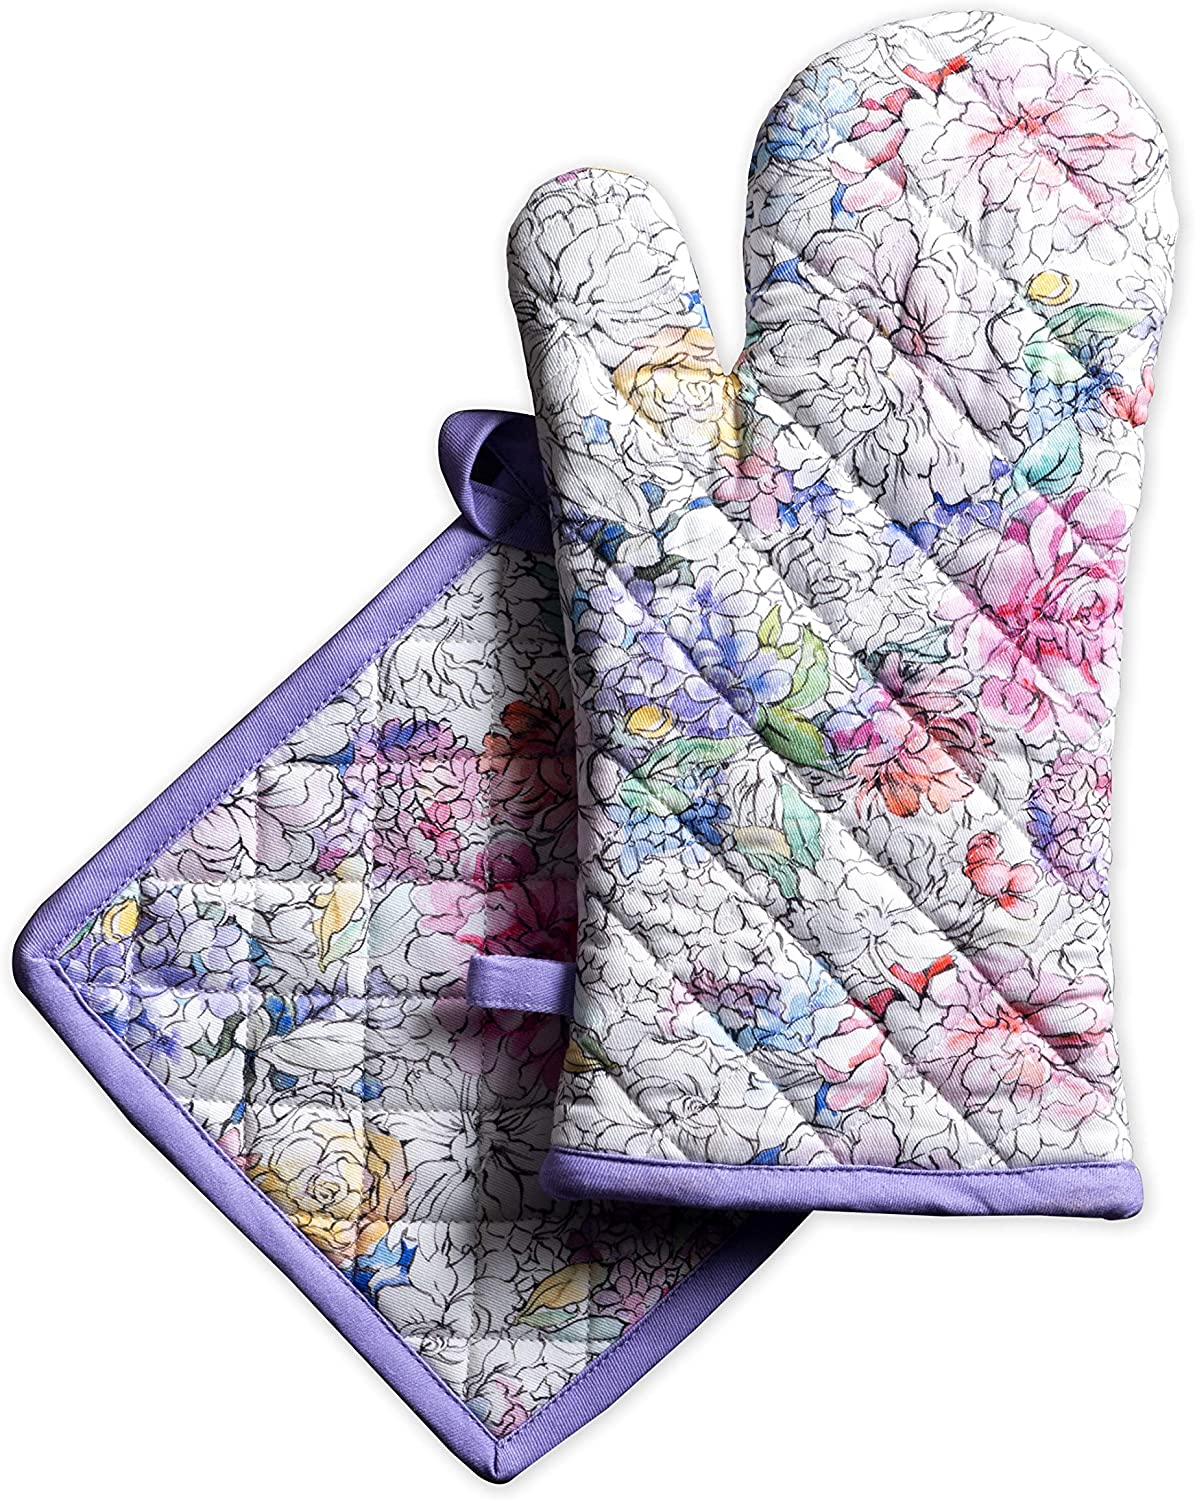 Maison d' Hermine Floral Love 100% Cotton Set of Oven Mitt (7.5 Inch by 13 Inch) and Pot Holder (8 Inch by 8 Inch).